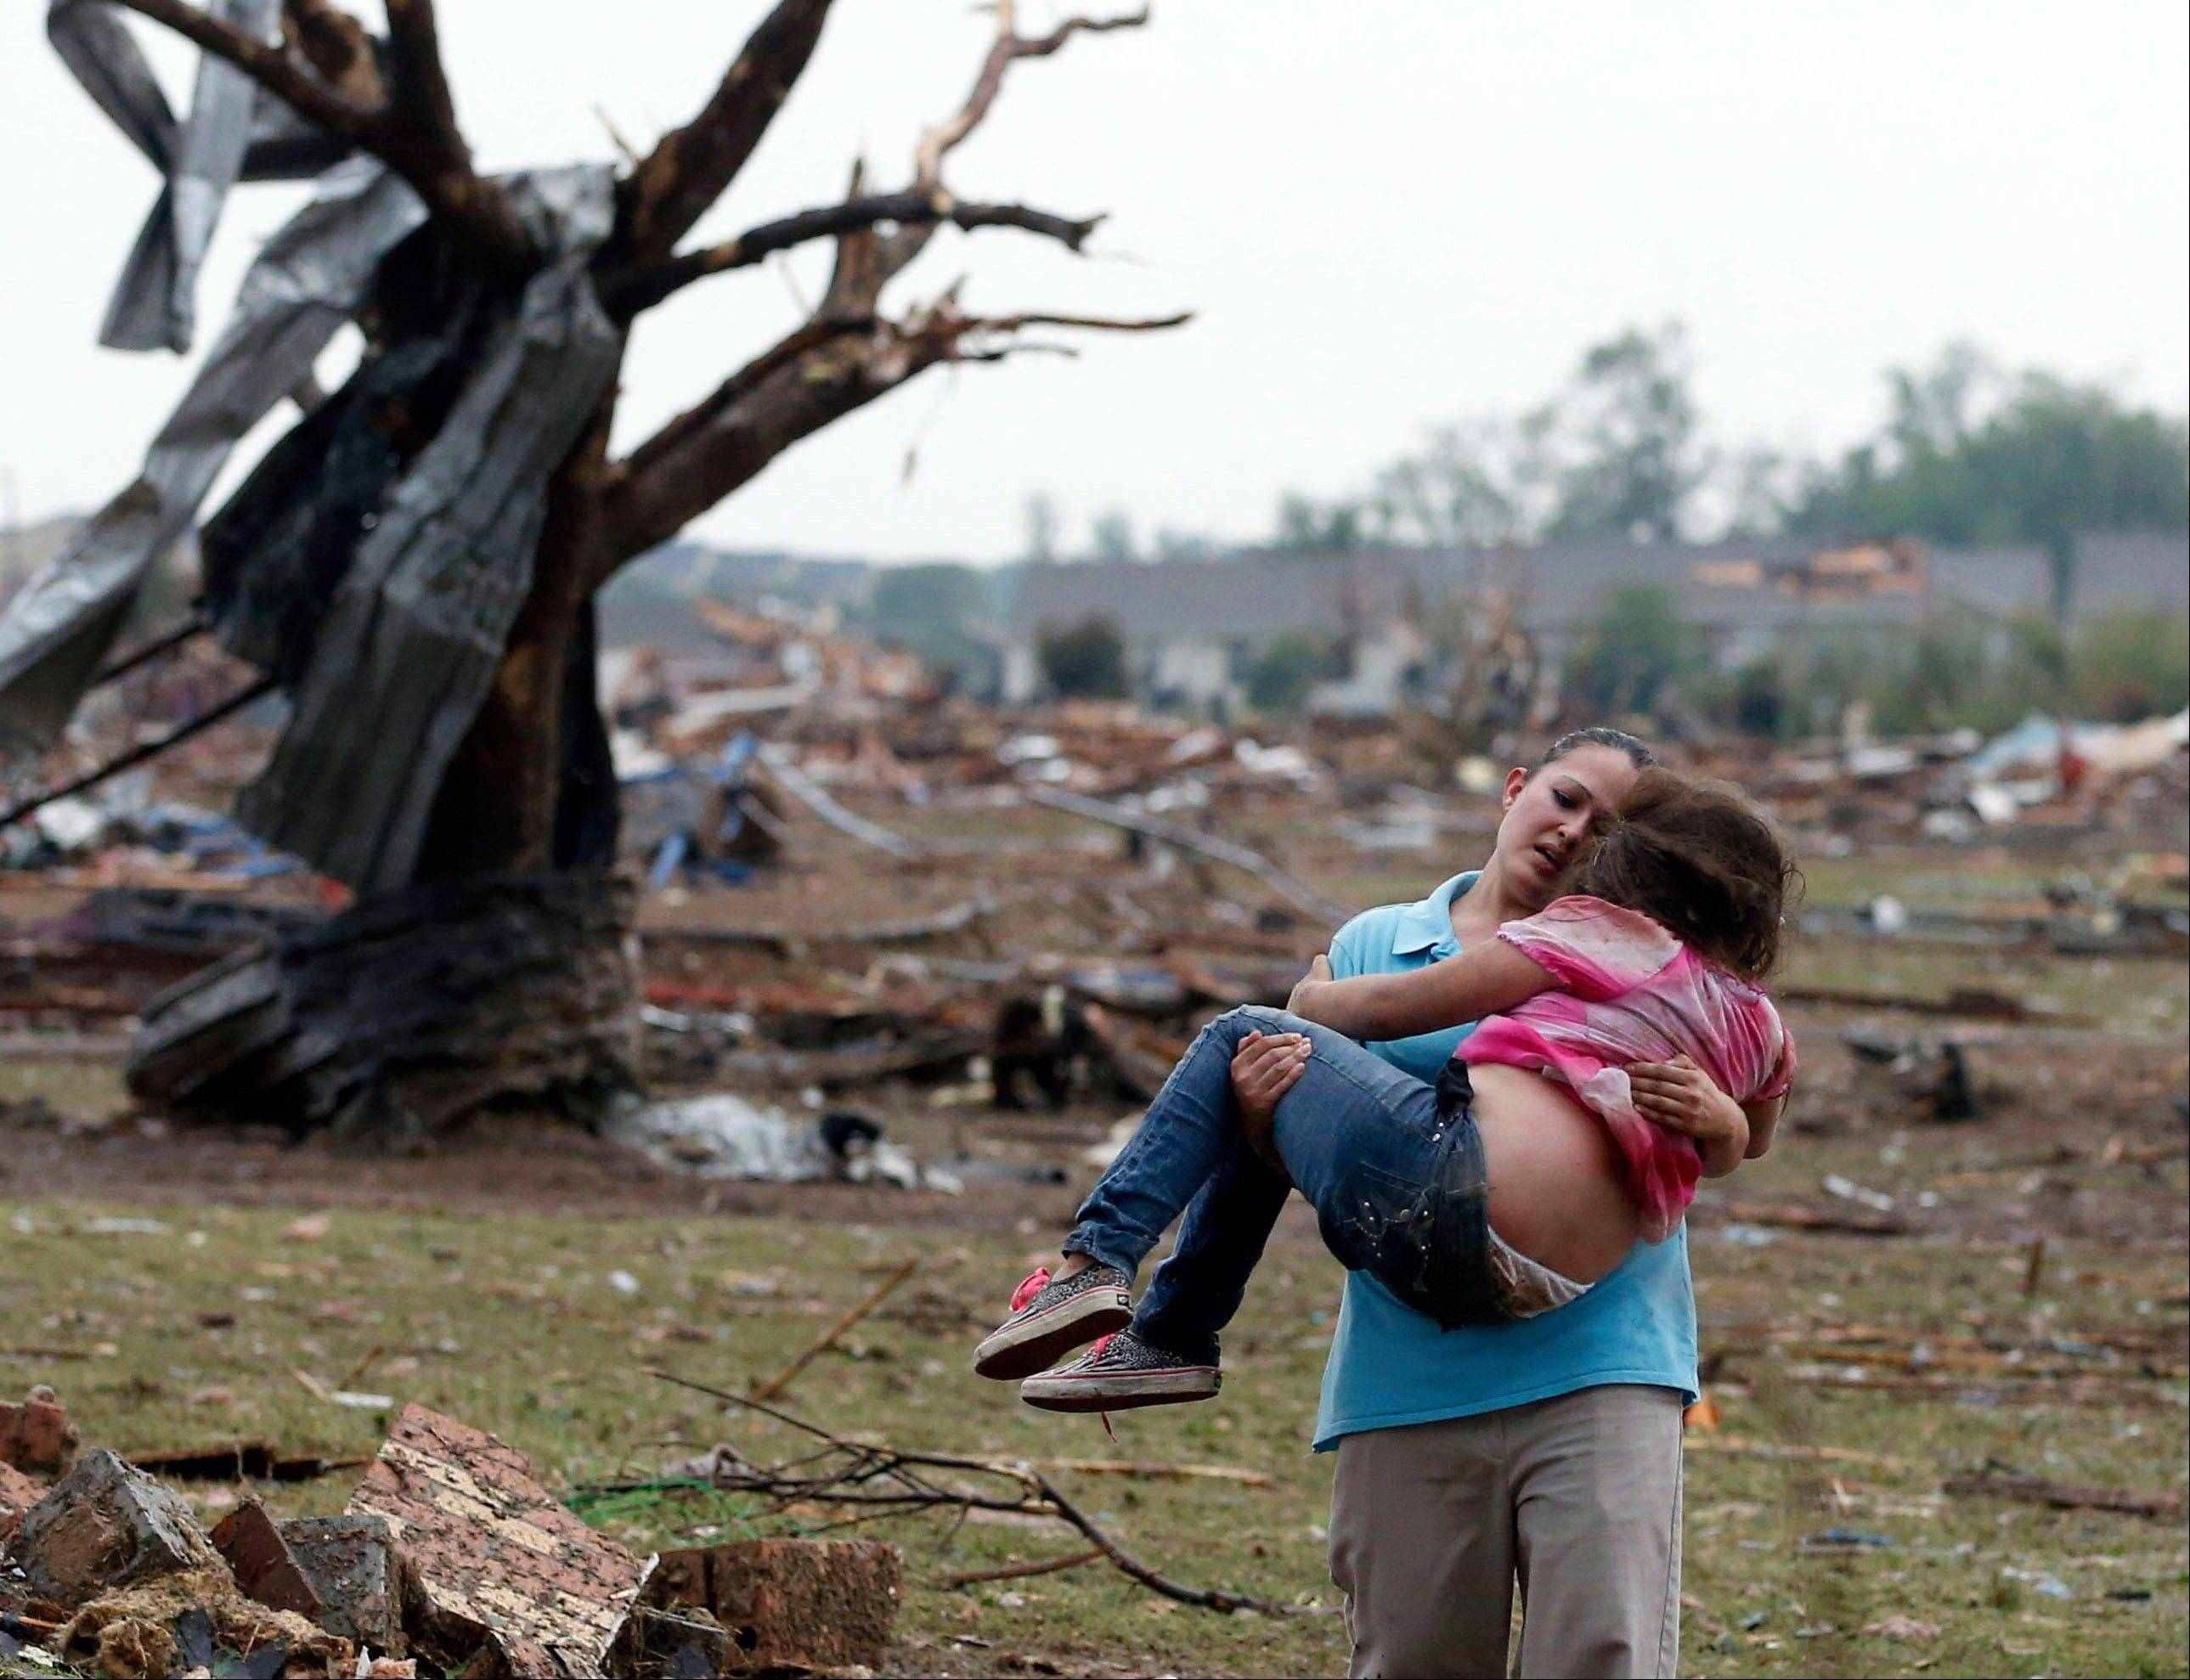 A woman carries a child through a field near the collapsed Plaza Towers Elementary School in Moore, Okla., Monday, May 20, 2013.